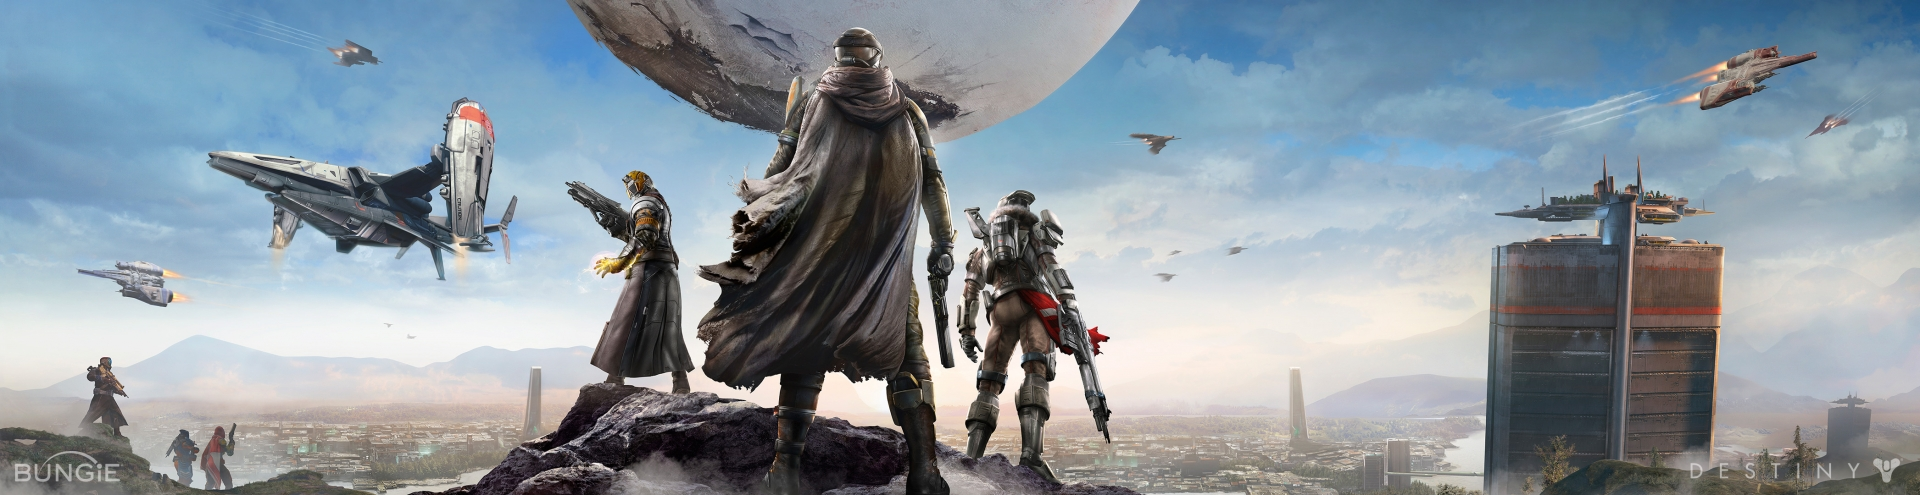 Bungie Reveals Breathtaking HD panoramic Wallpapers for Destiny PS4 1920x495